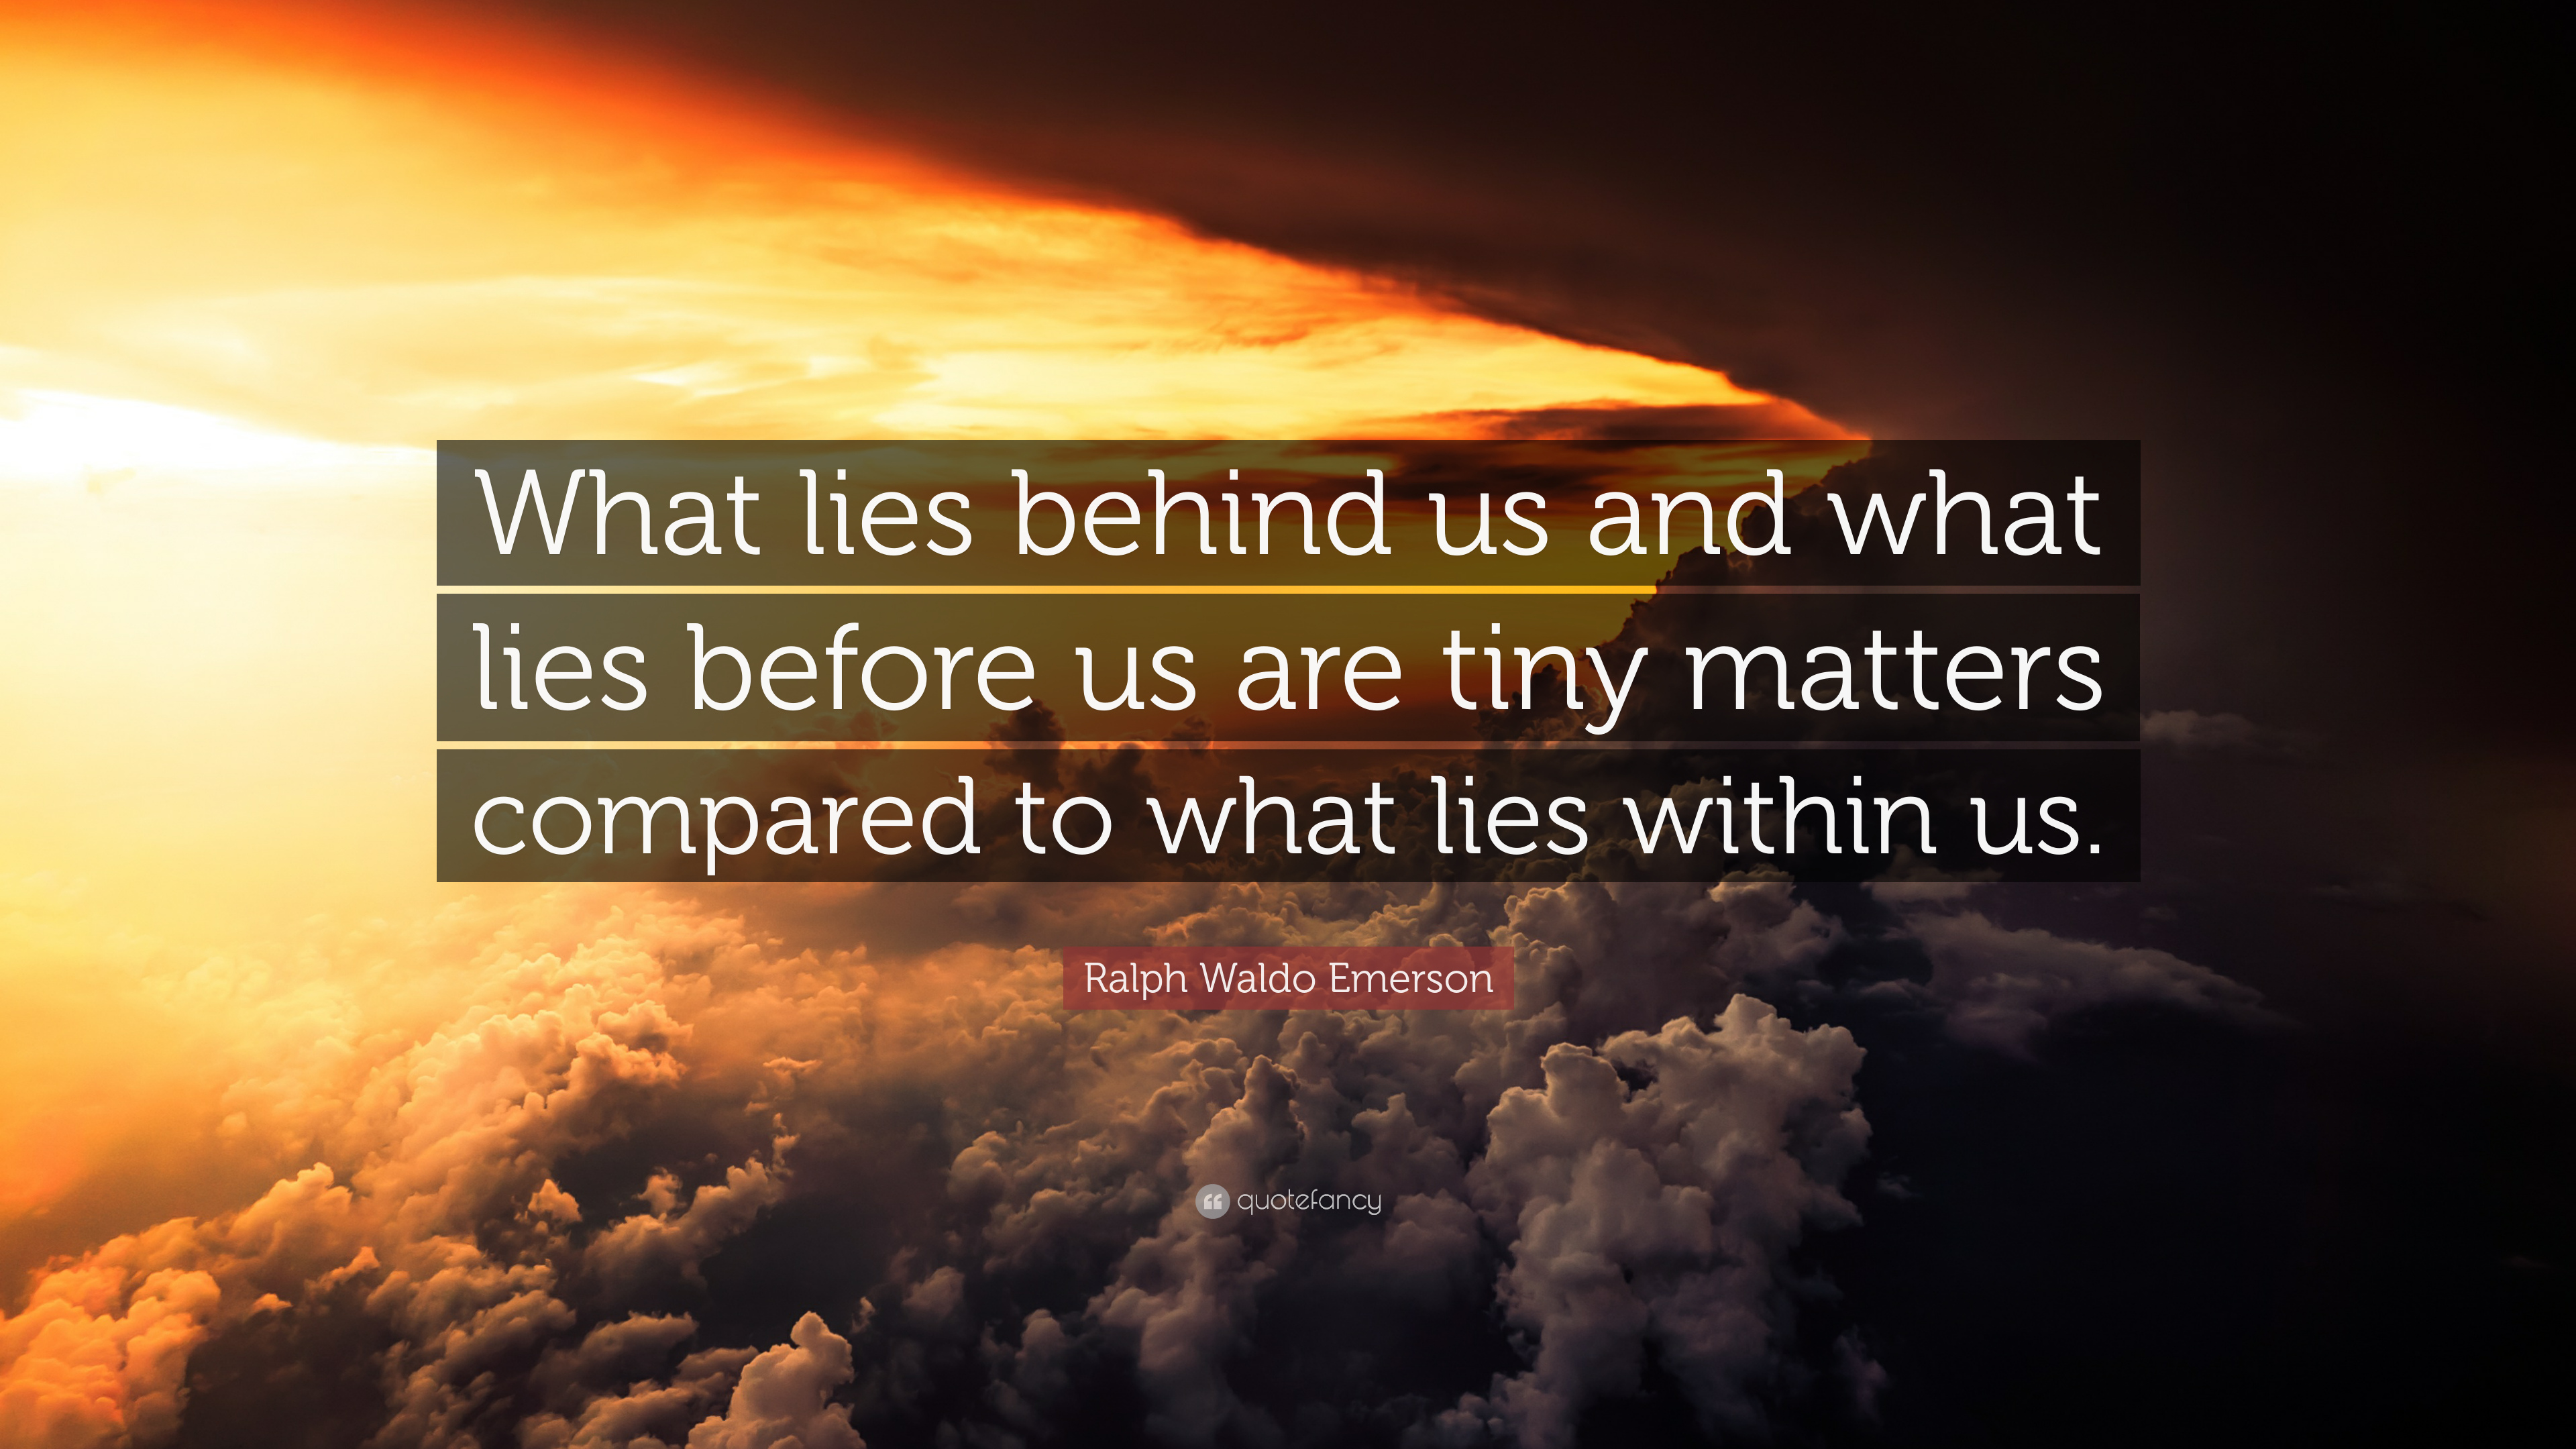 Ralph Waldo Emerson Quote: U201cWhat Lies Behind Us And What Lies Before Us Are